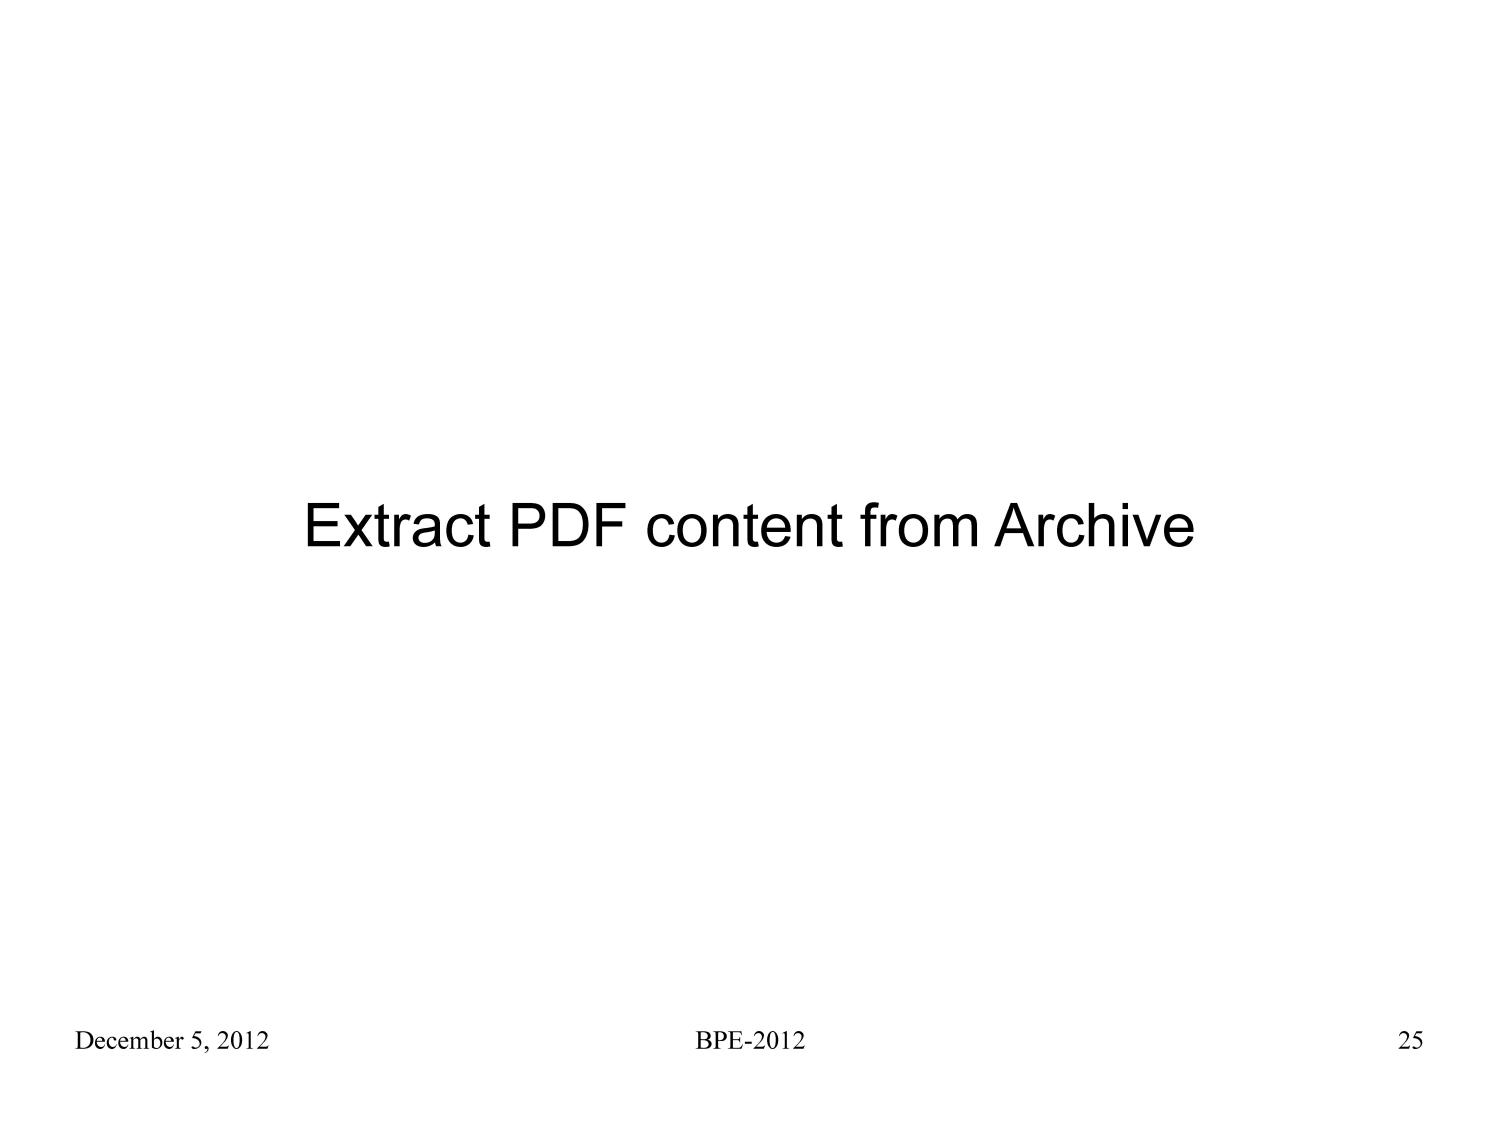 End of Term 2008 Presidential Web Archive: PDF Content Analysis                                                                                                      [Sequence #]: 25 of 104